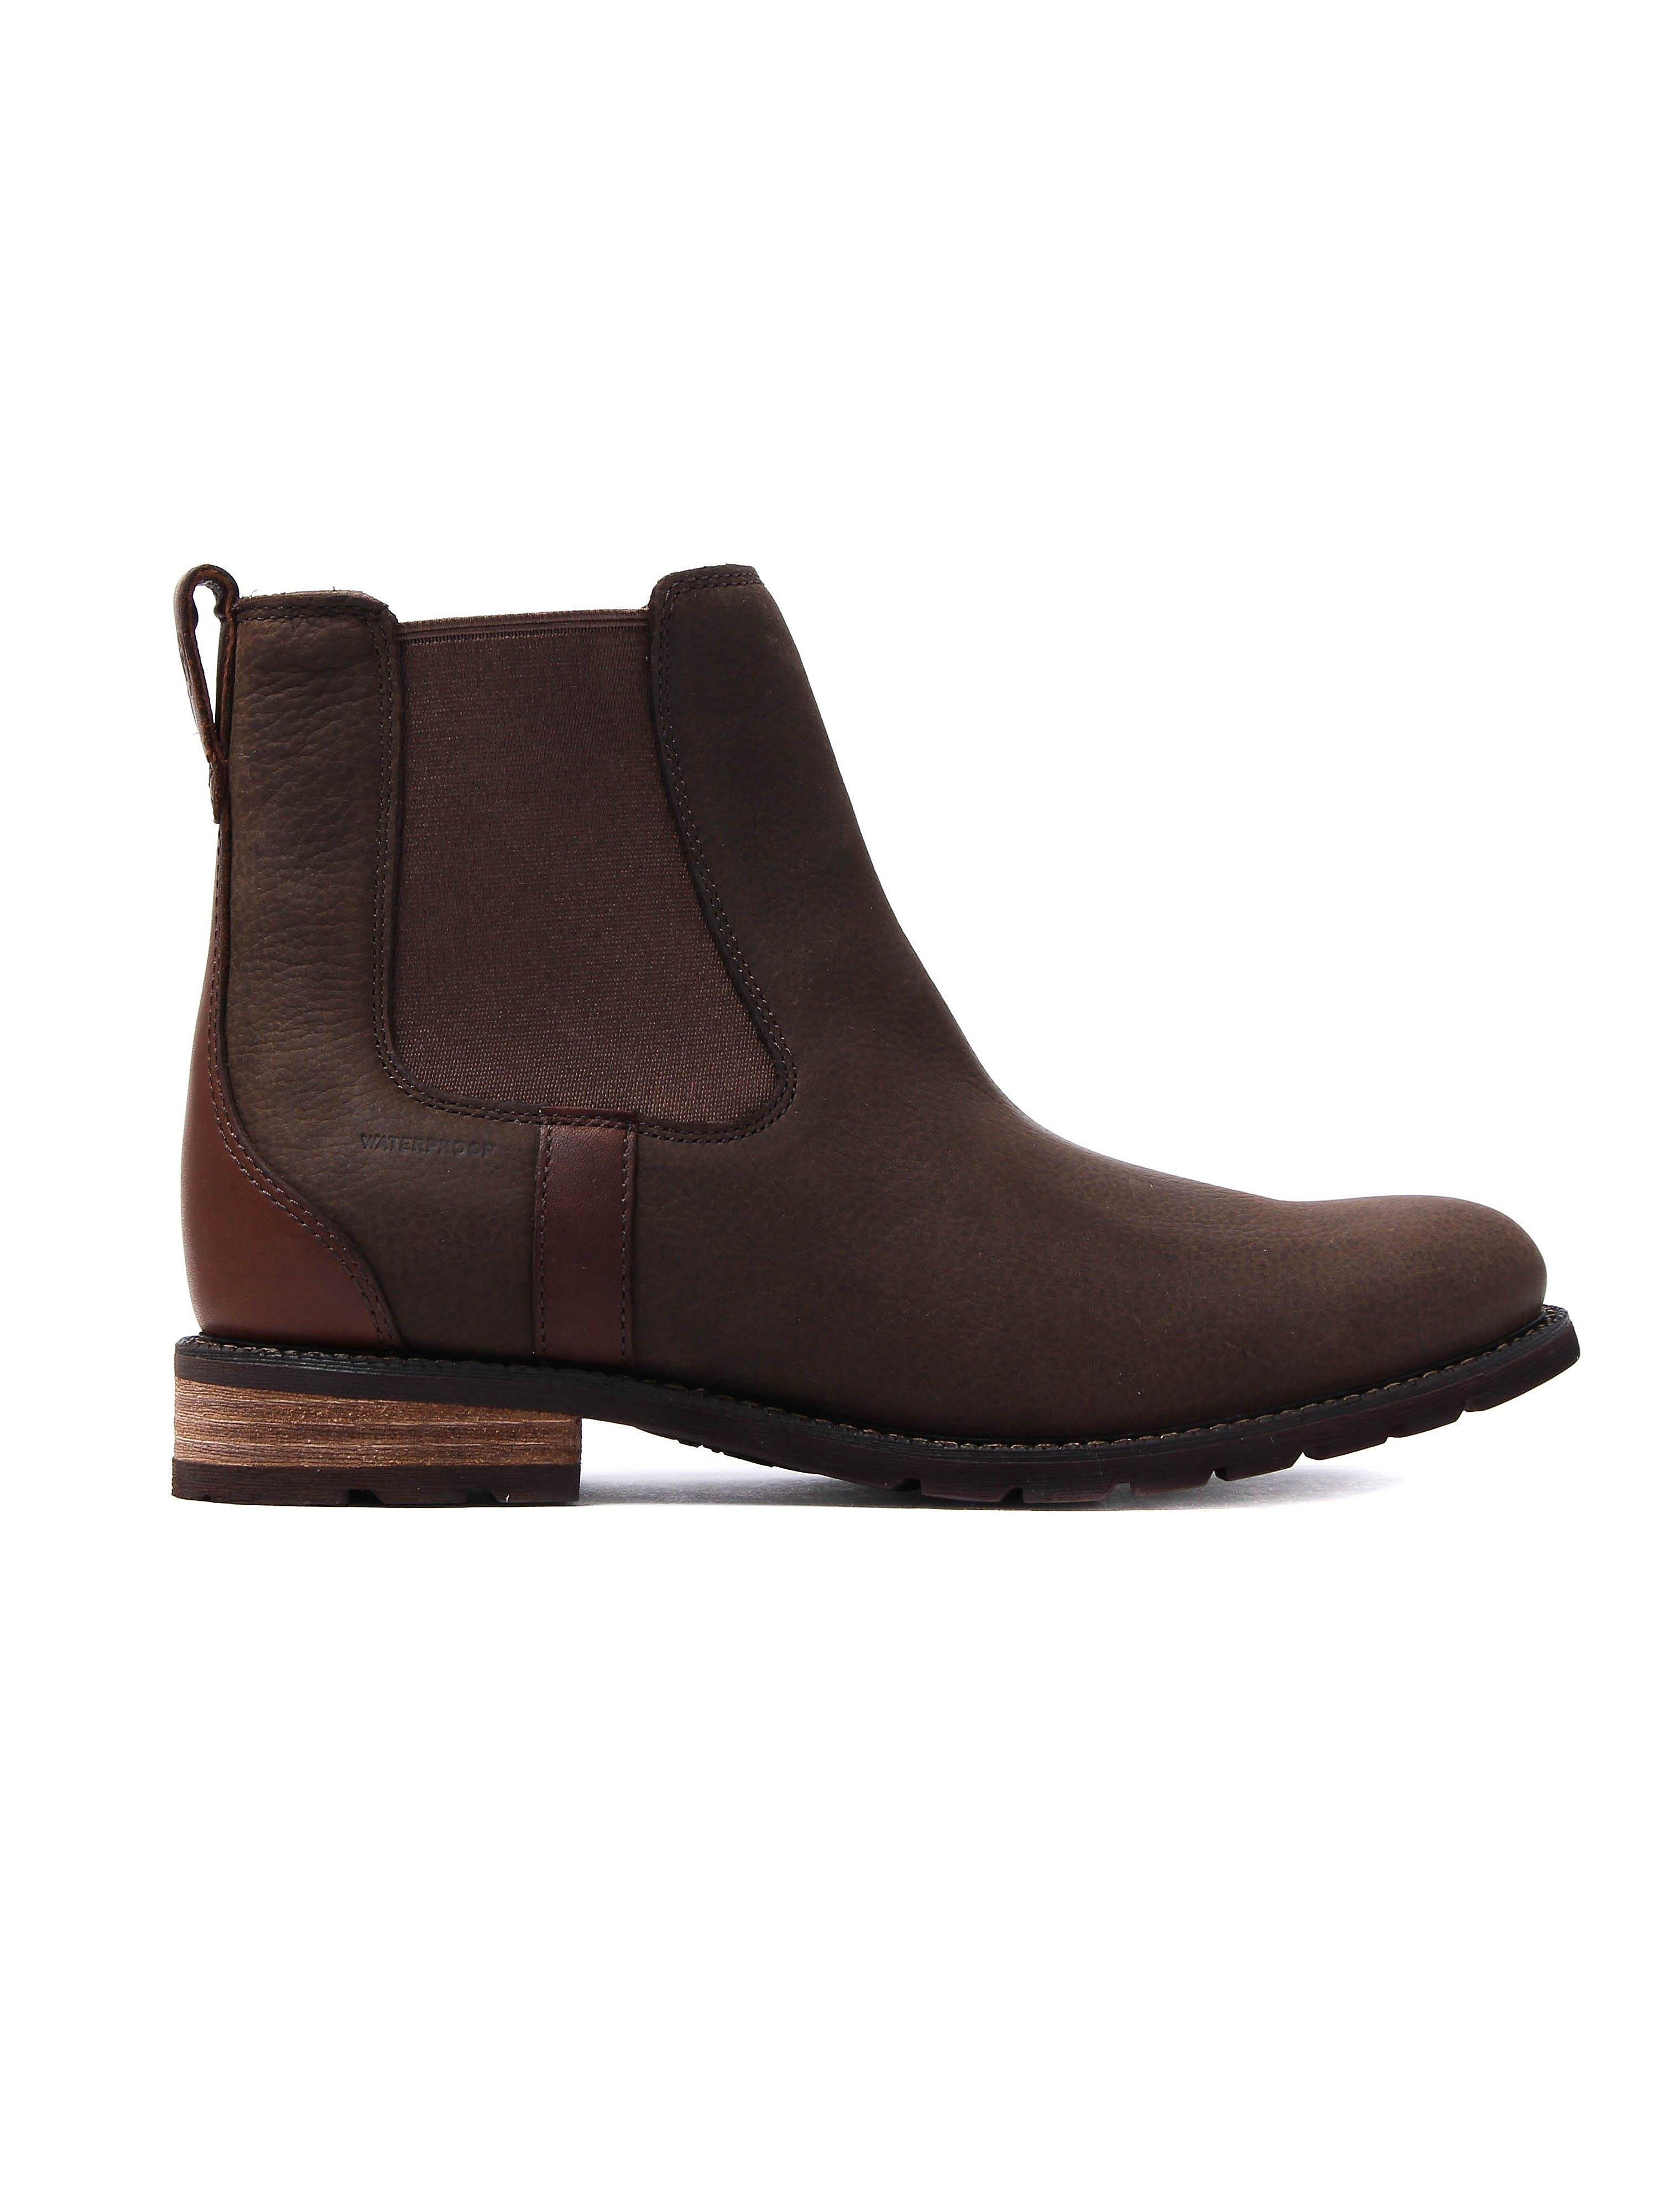 Ariat Women's Wexford H2O Leather Chelsea Boots - Java